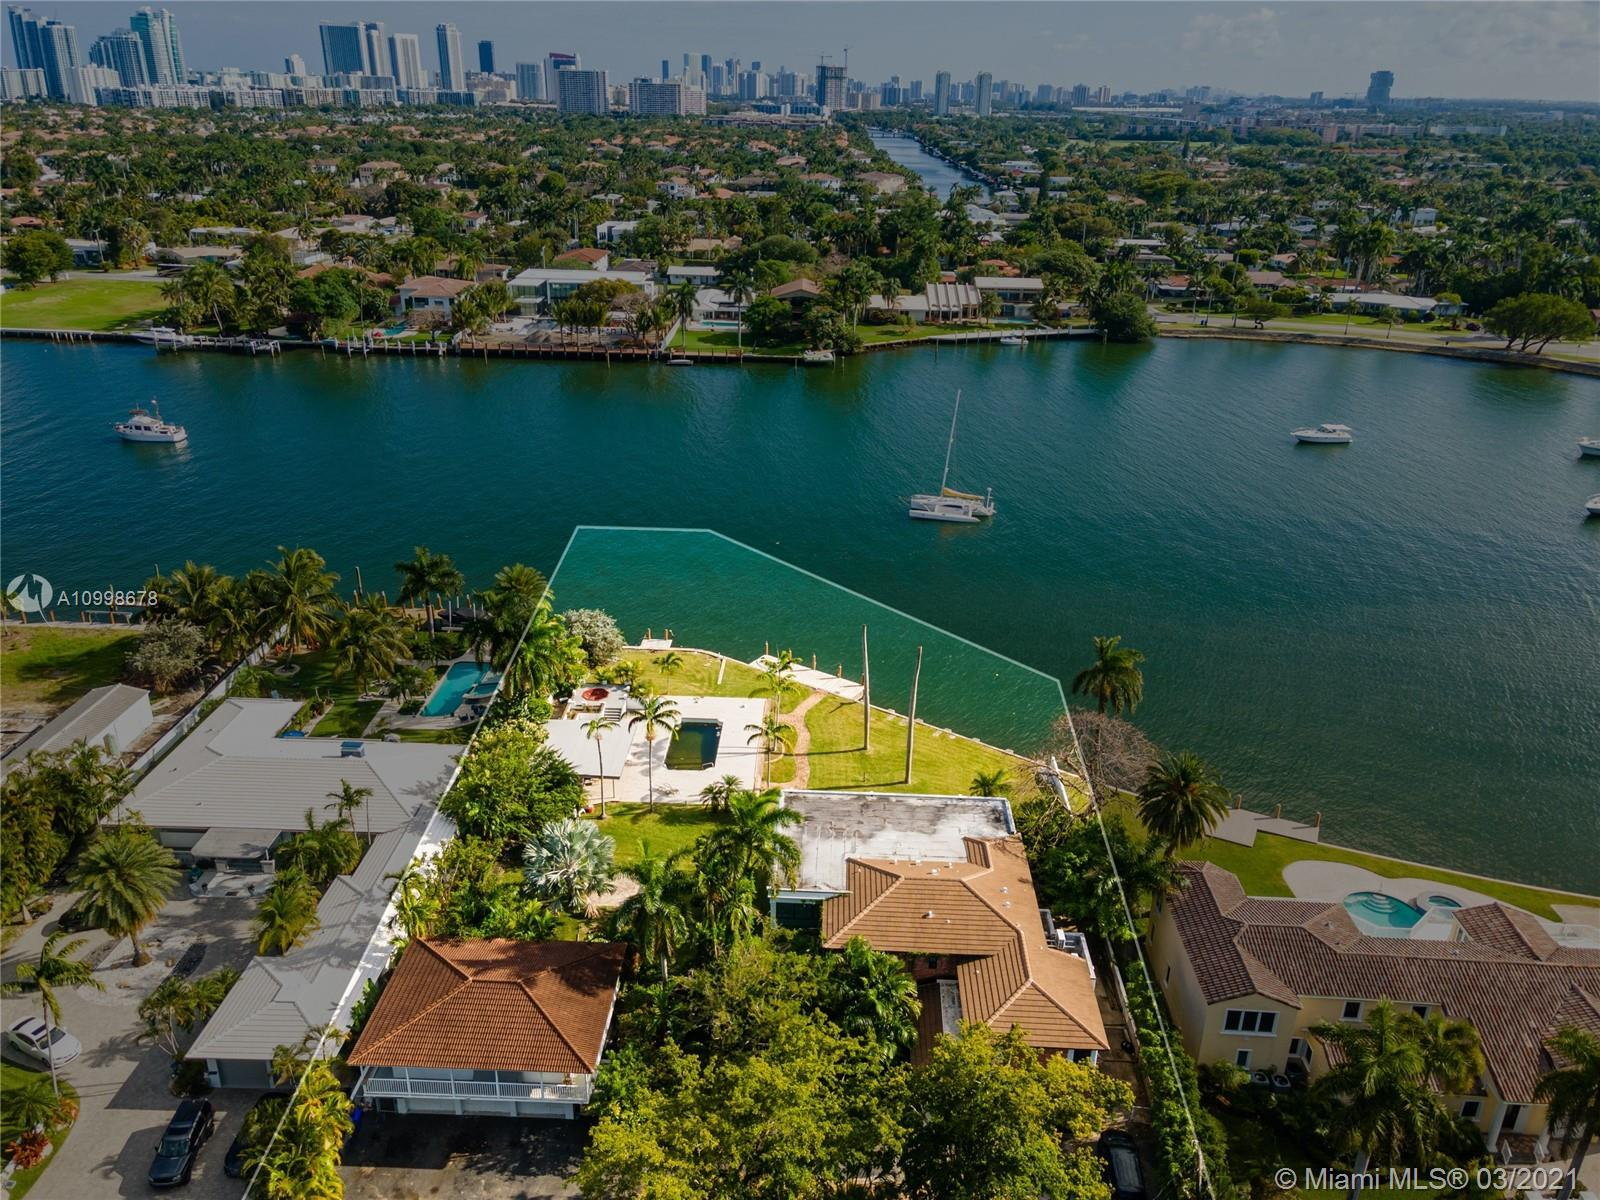 Prime waterfront land for sale to develop or custom build your dream house. Lot is over 30,000 sq ft